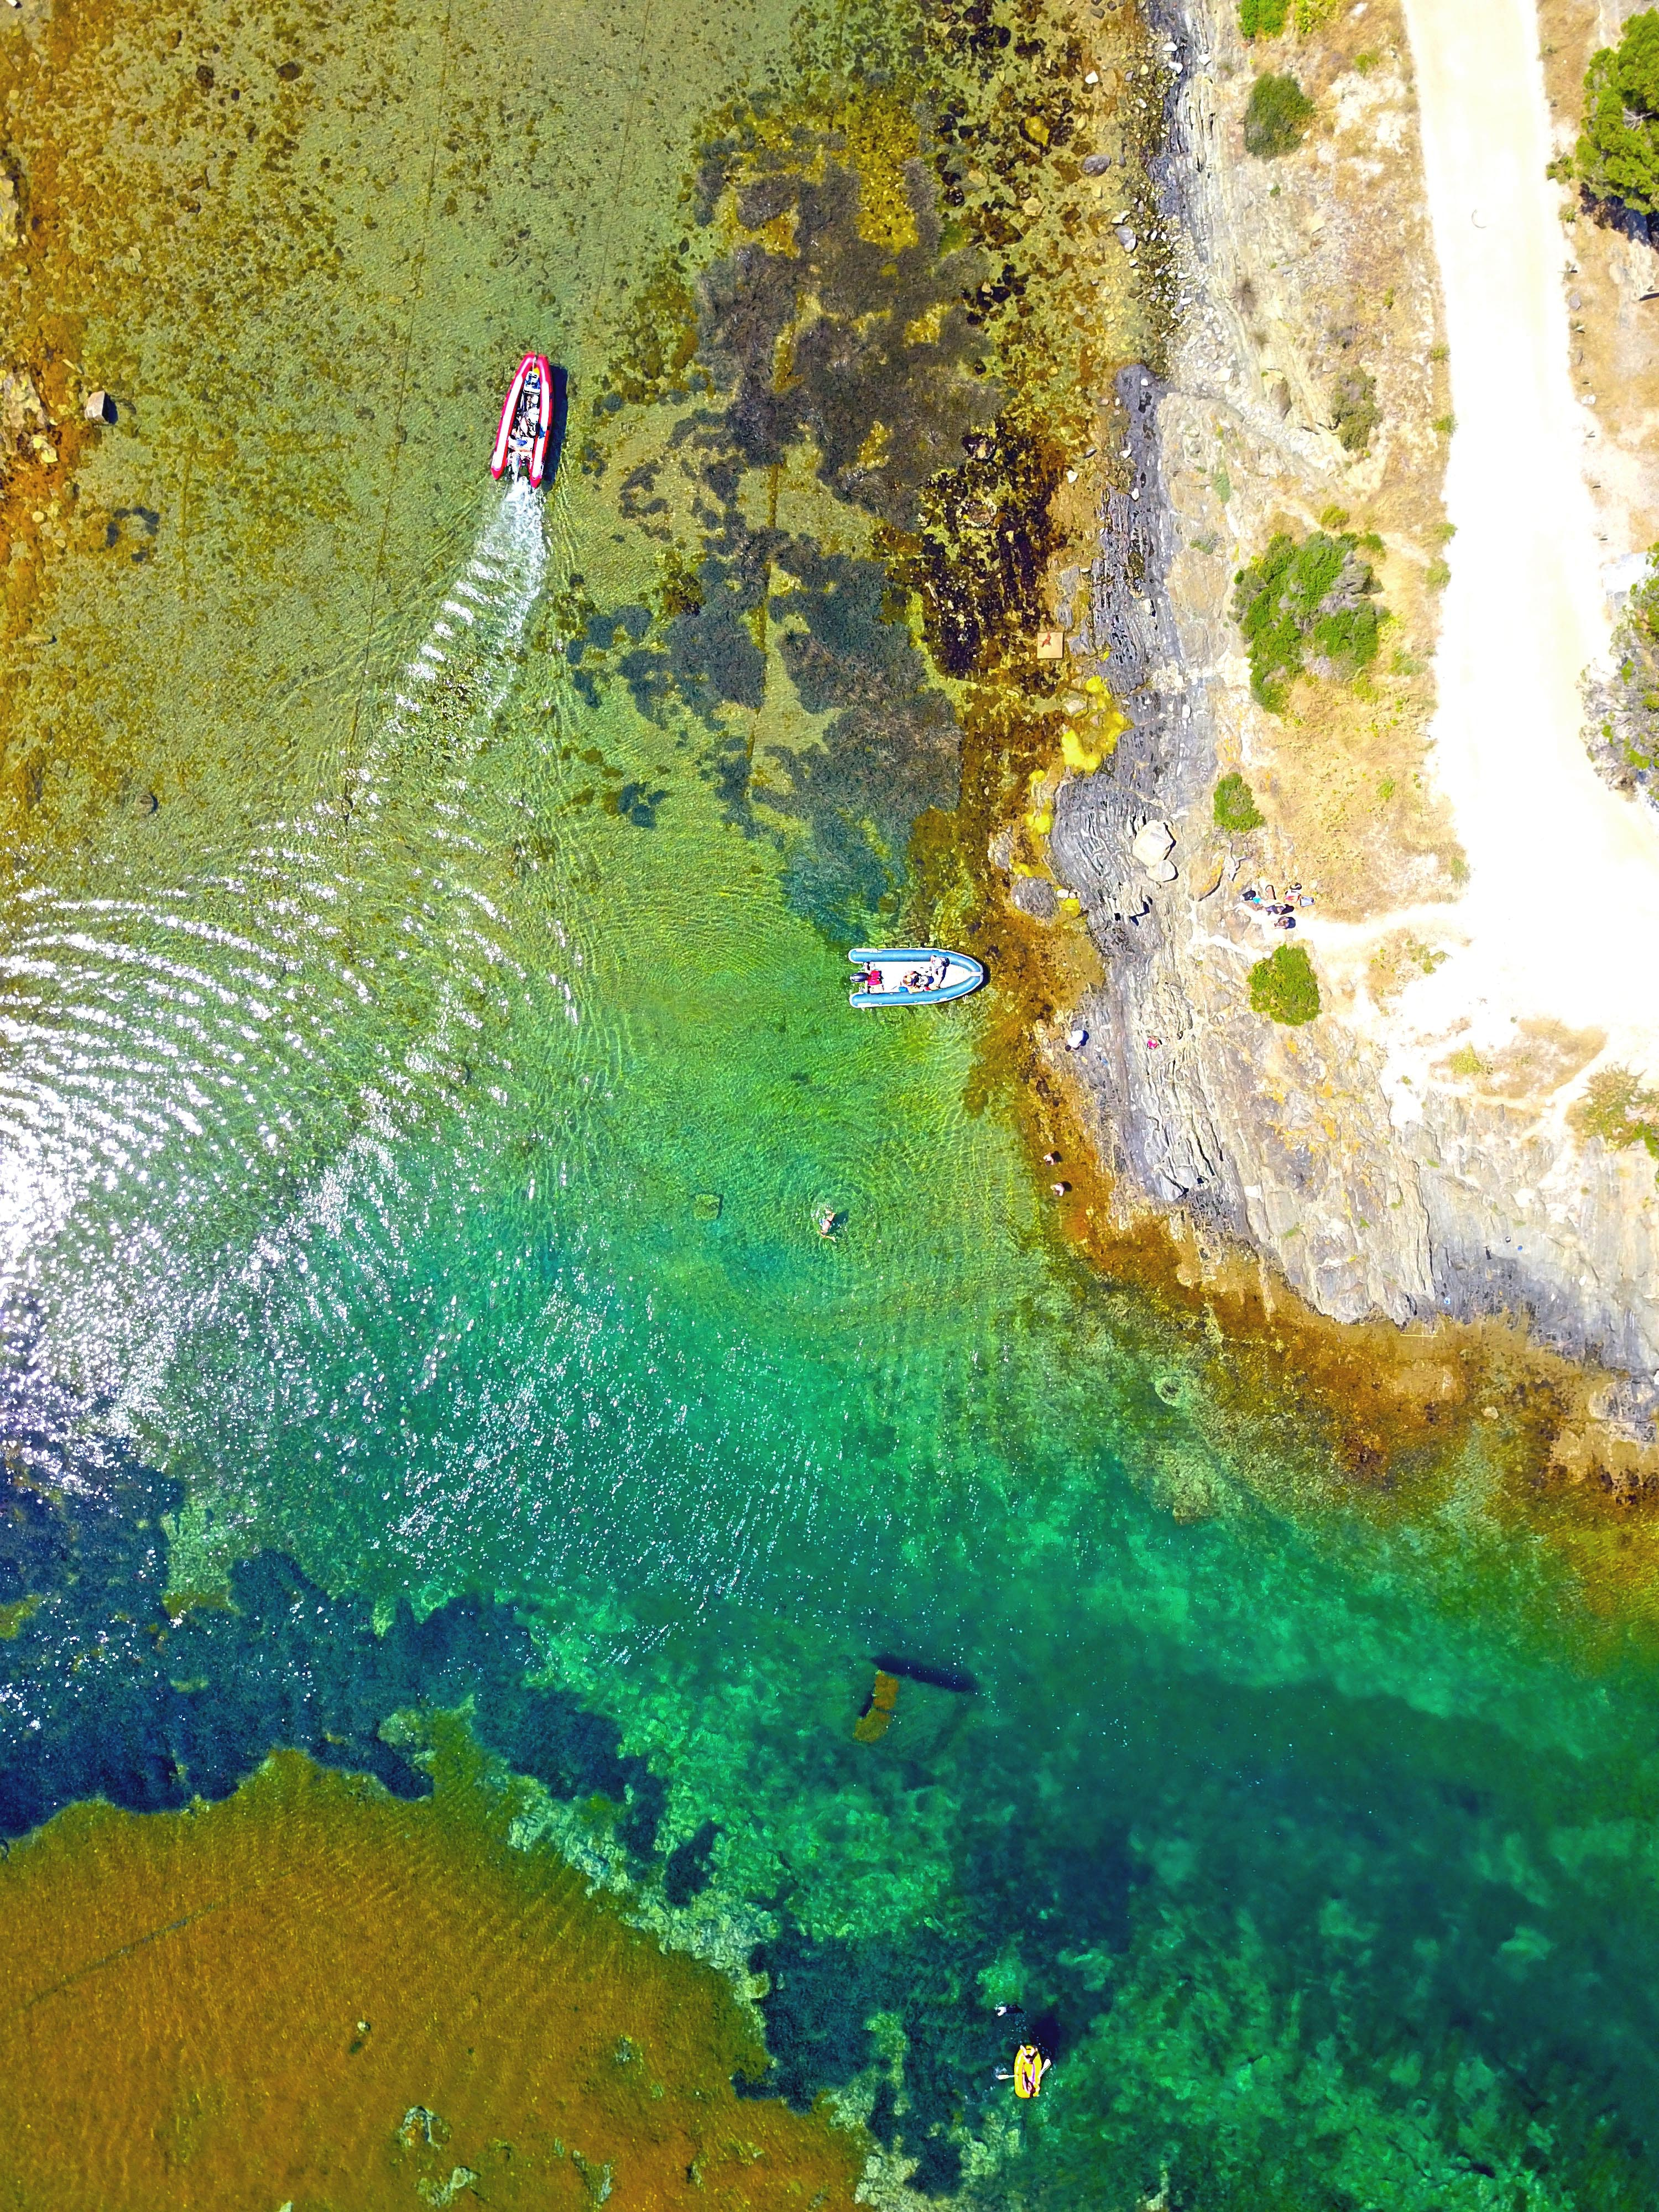 Drone view of boats in colorful shallow waters in Catalunya, Spain.